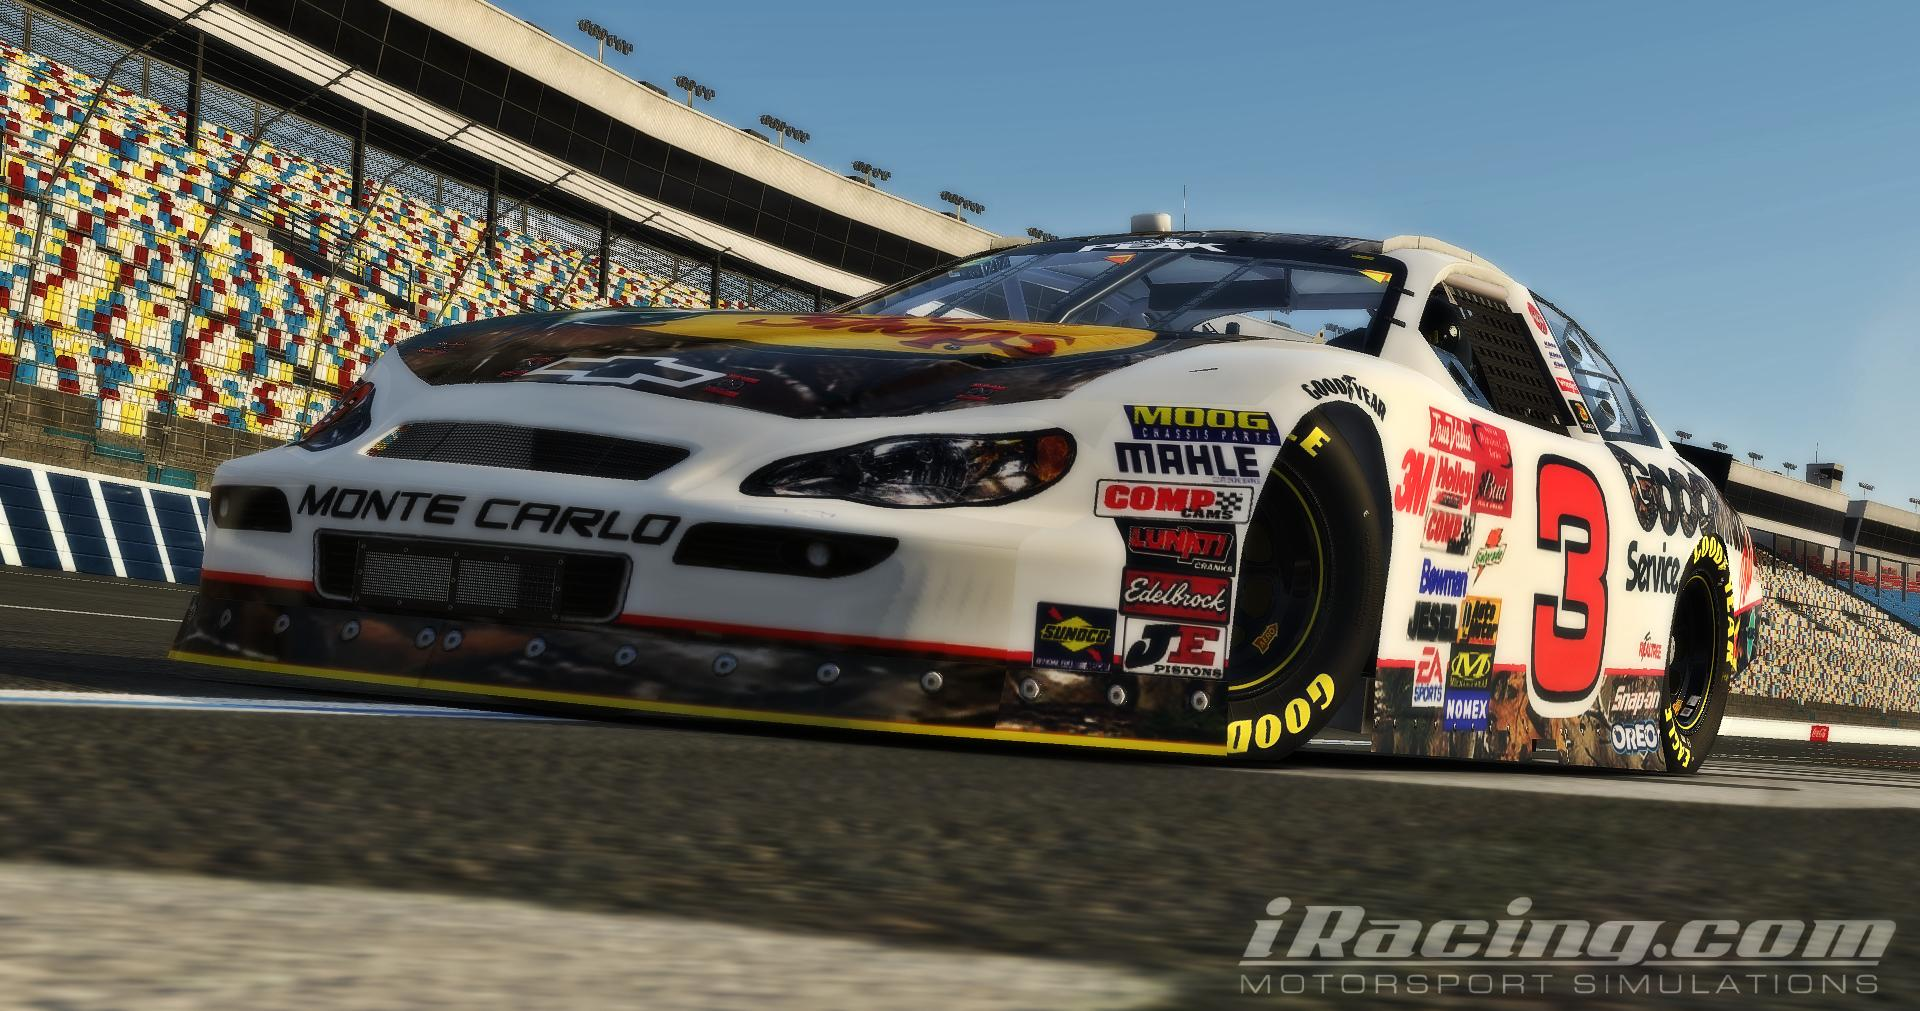 Preview of Goodwrench Camo  Chevrolet MonteCarlo  by Trent Williams